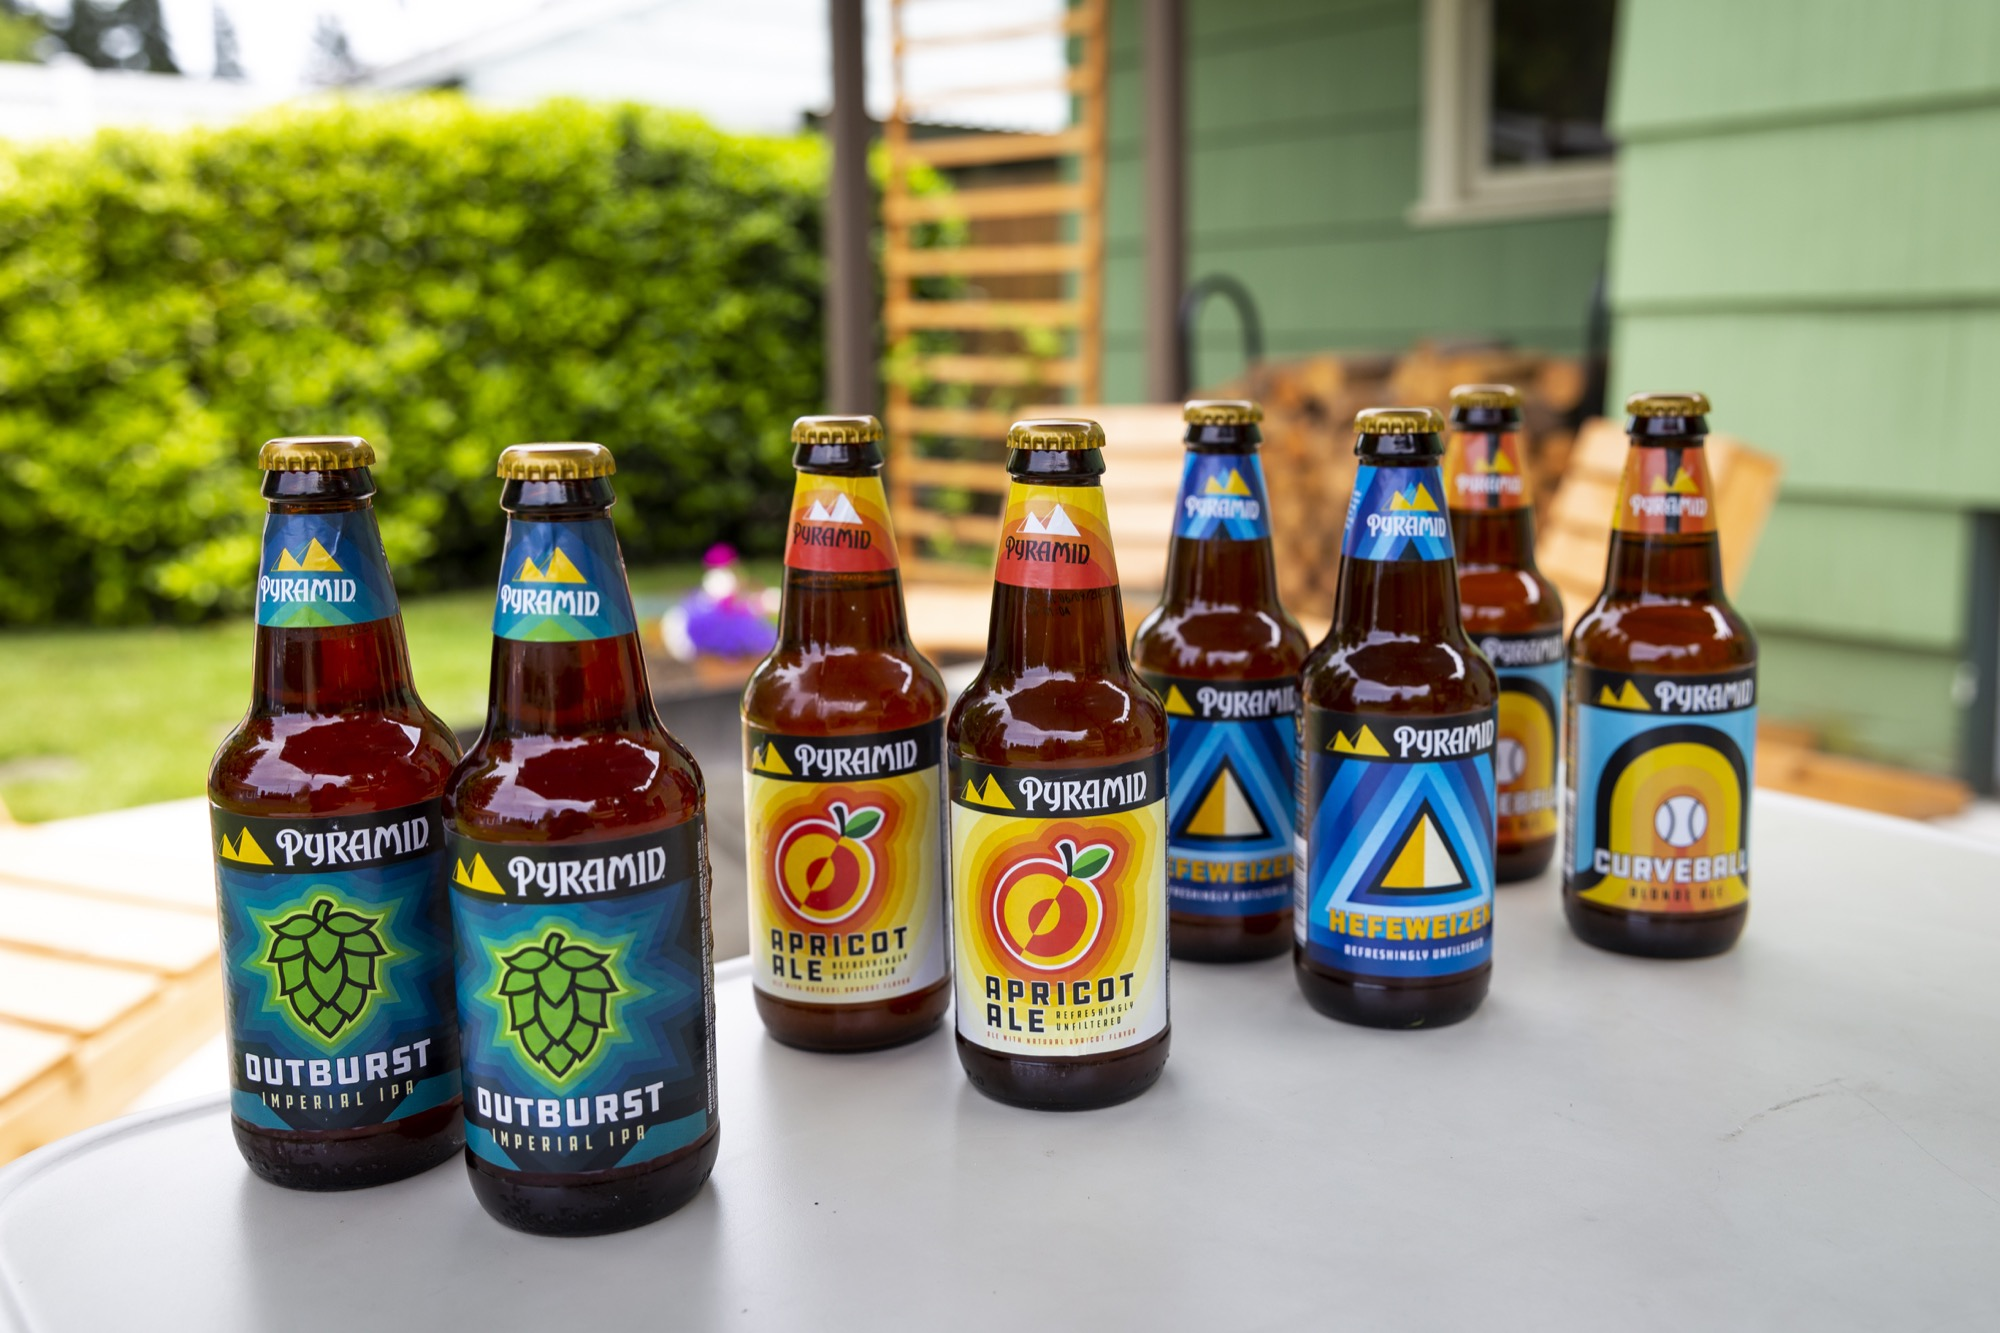 Updated Pyramid packaging for its Outburst Imperial IPA, Apricot Ale, Hefeweizen, and Curveball Blonde Ale. (image courtesy of Pyramid Brewing)